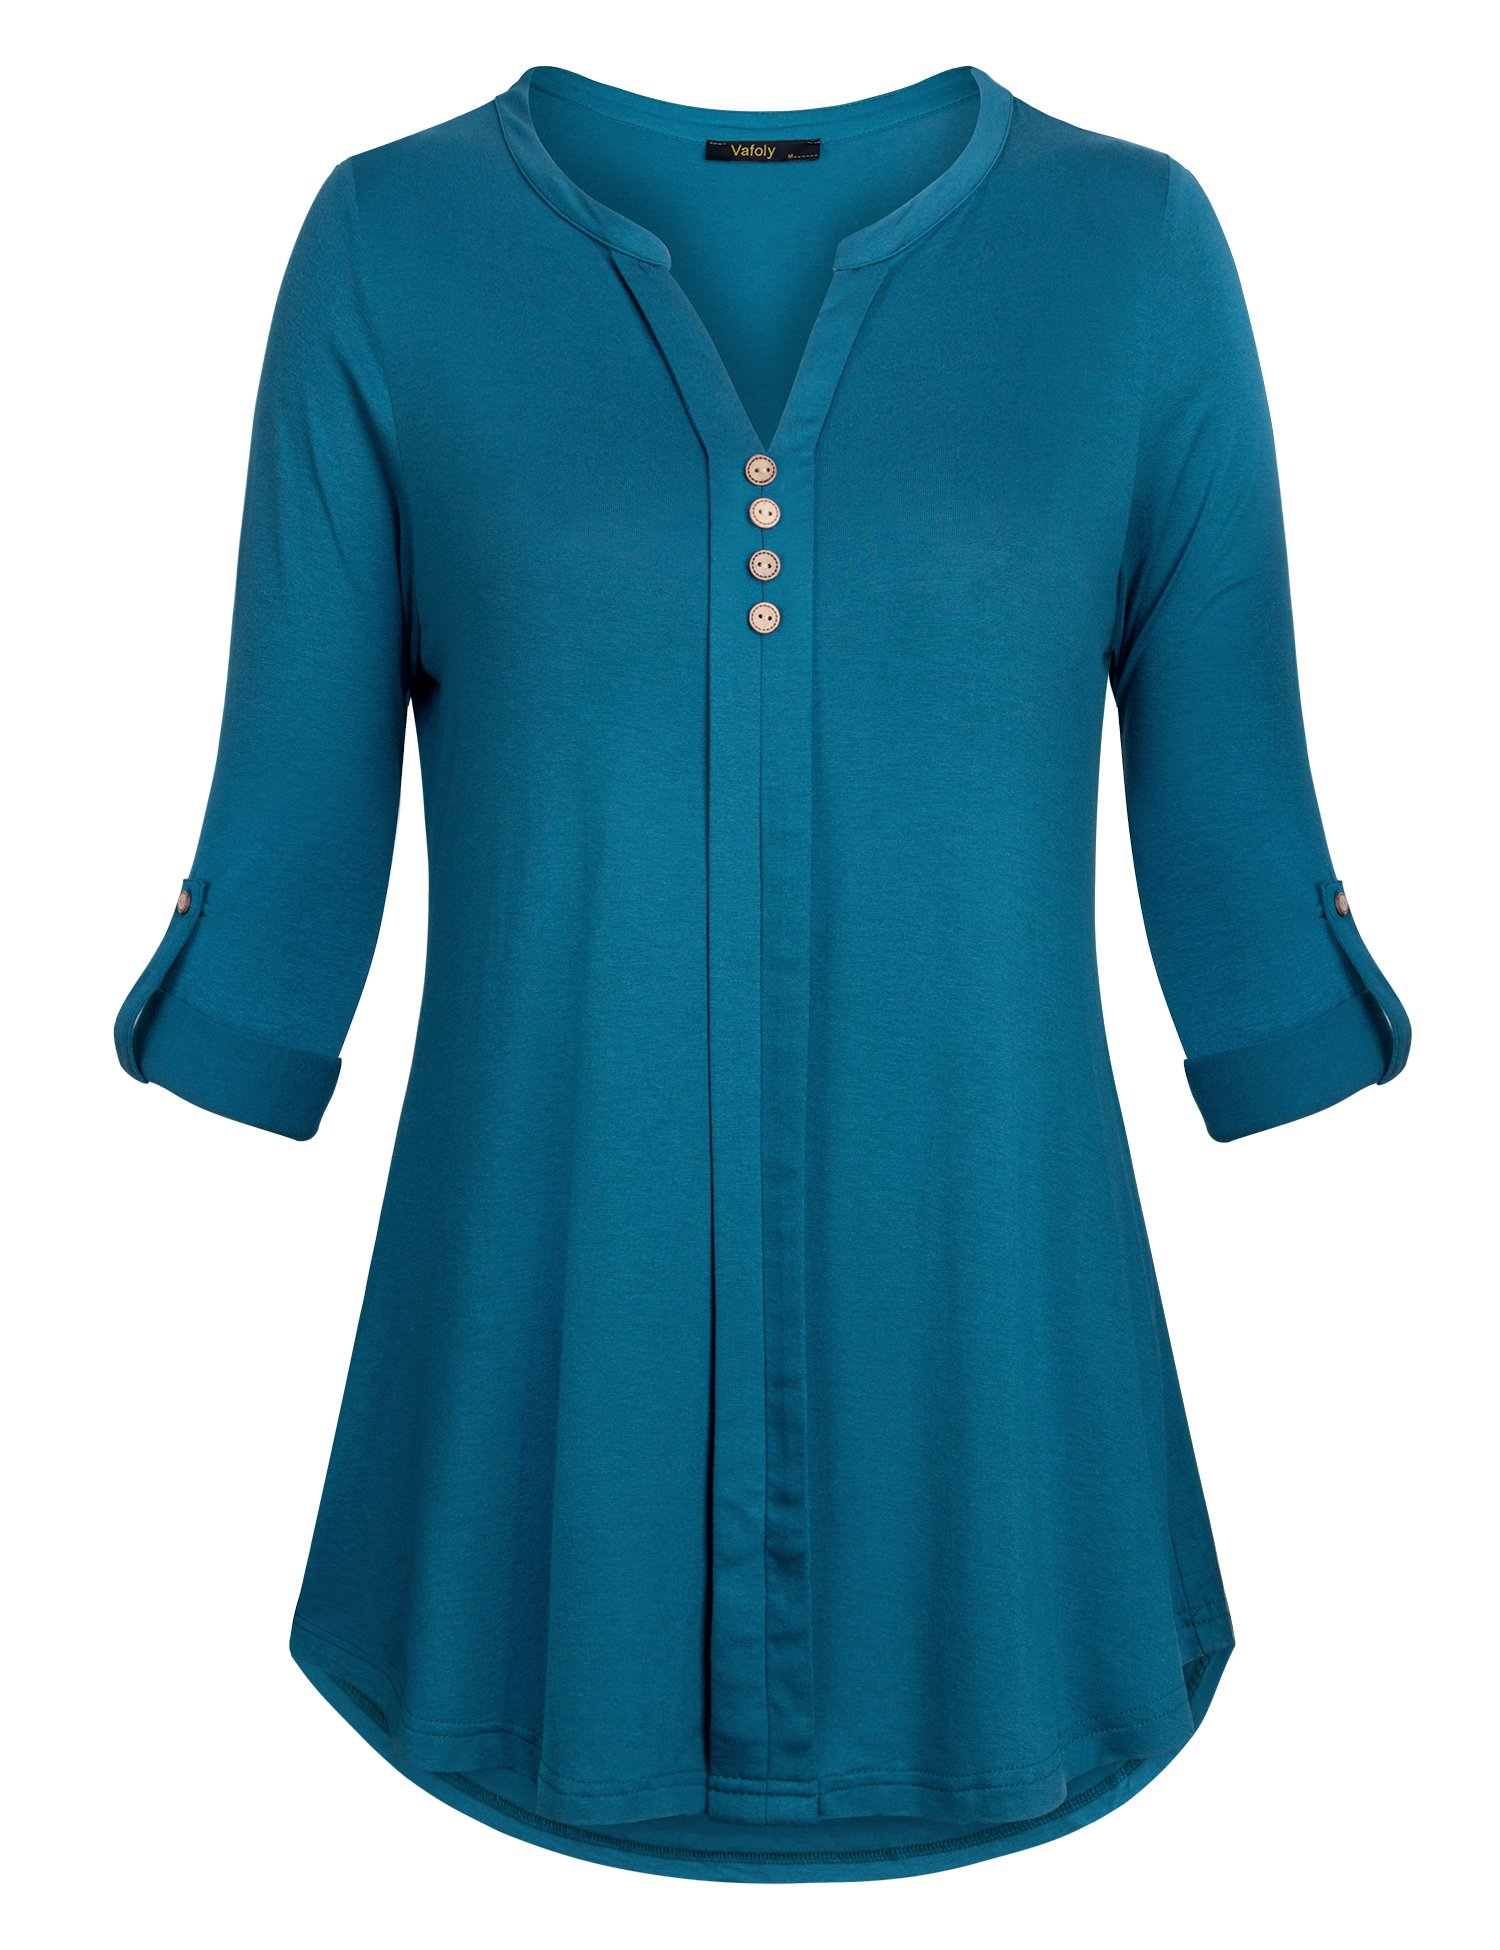 Womens Tunic Tops,Vafoly 3/4 Sleeve T Shirts,Ladies Tops Roll Up Sleeve Henley Tunic Blouses for Work Dark Cyan XXL